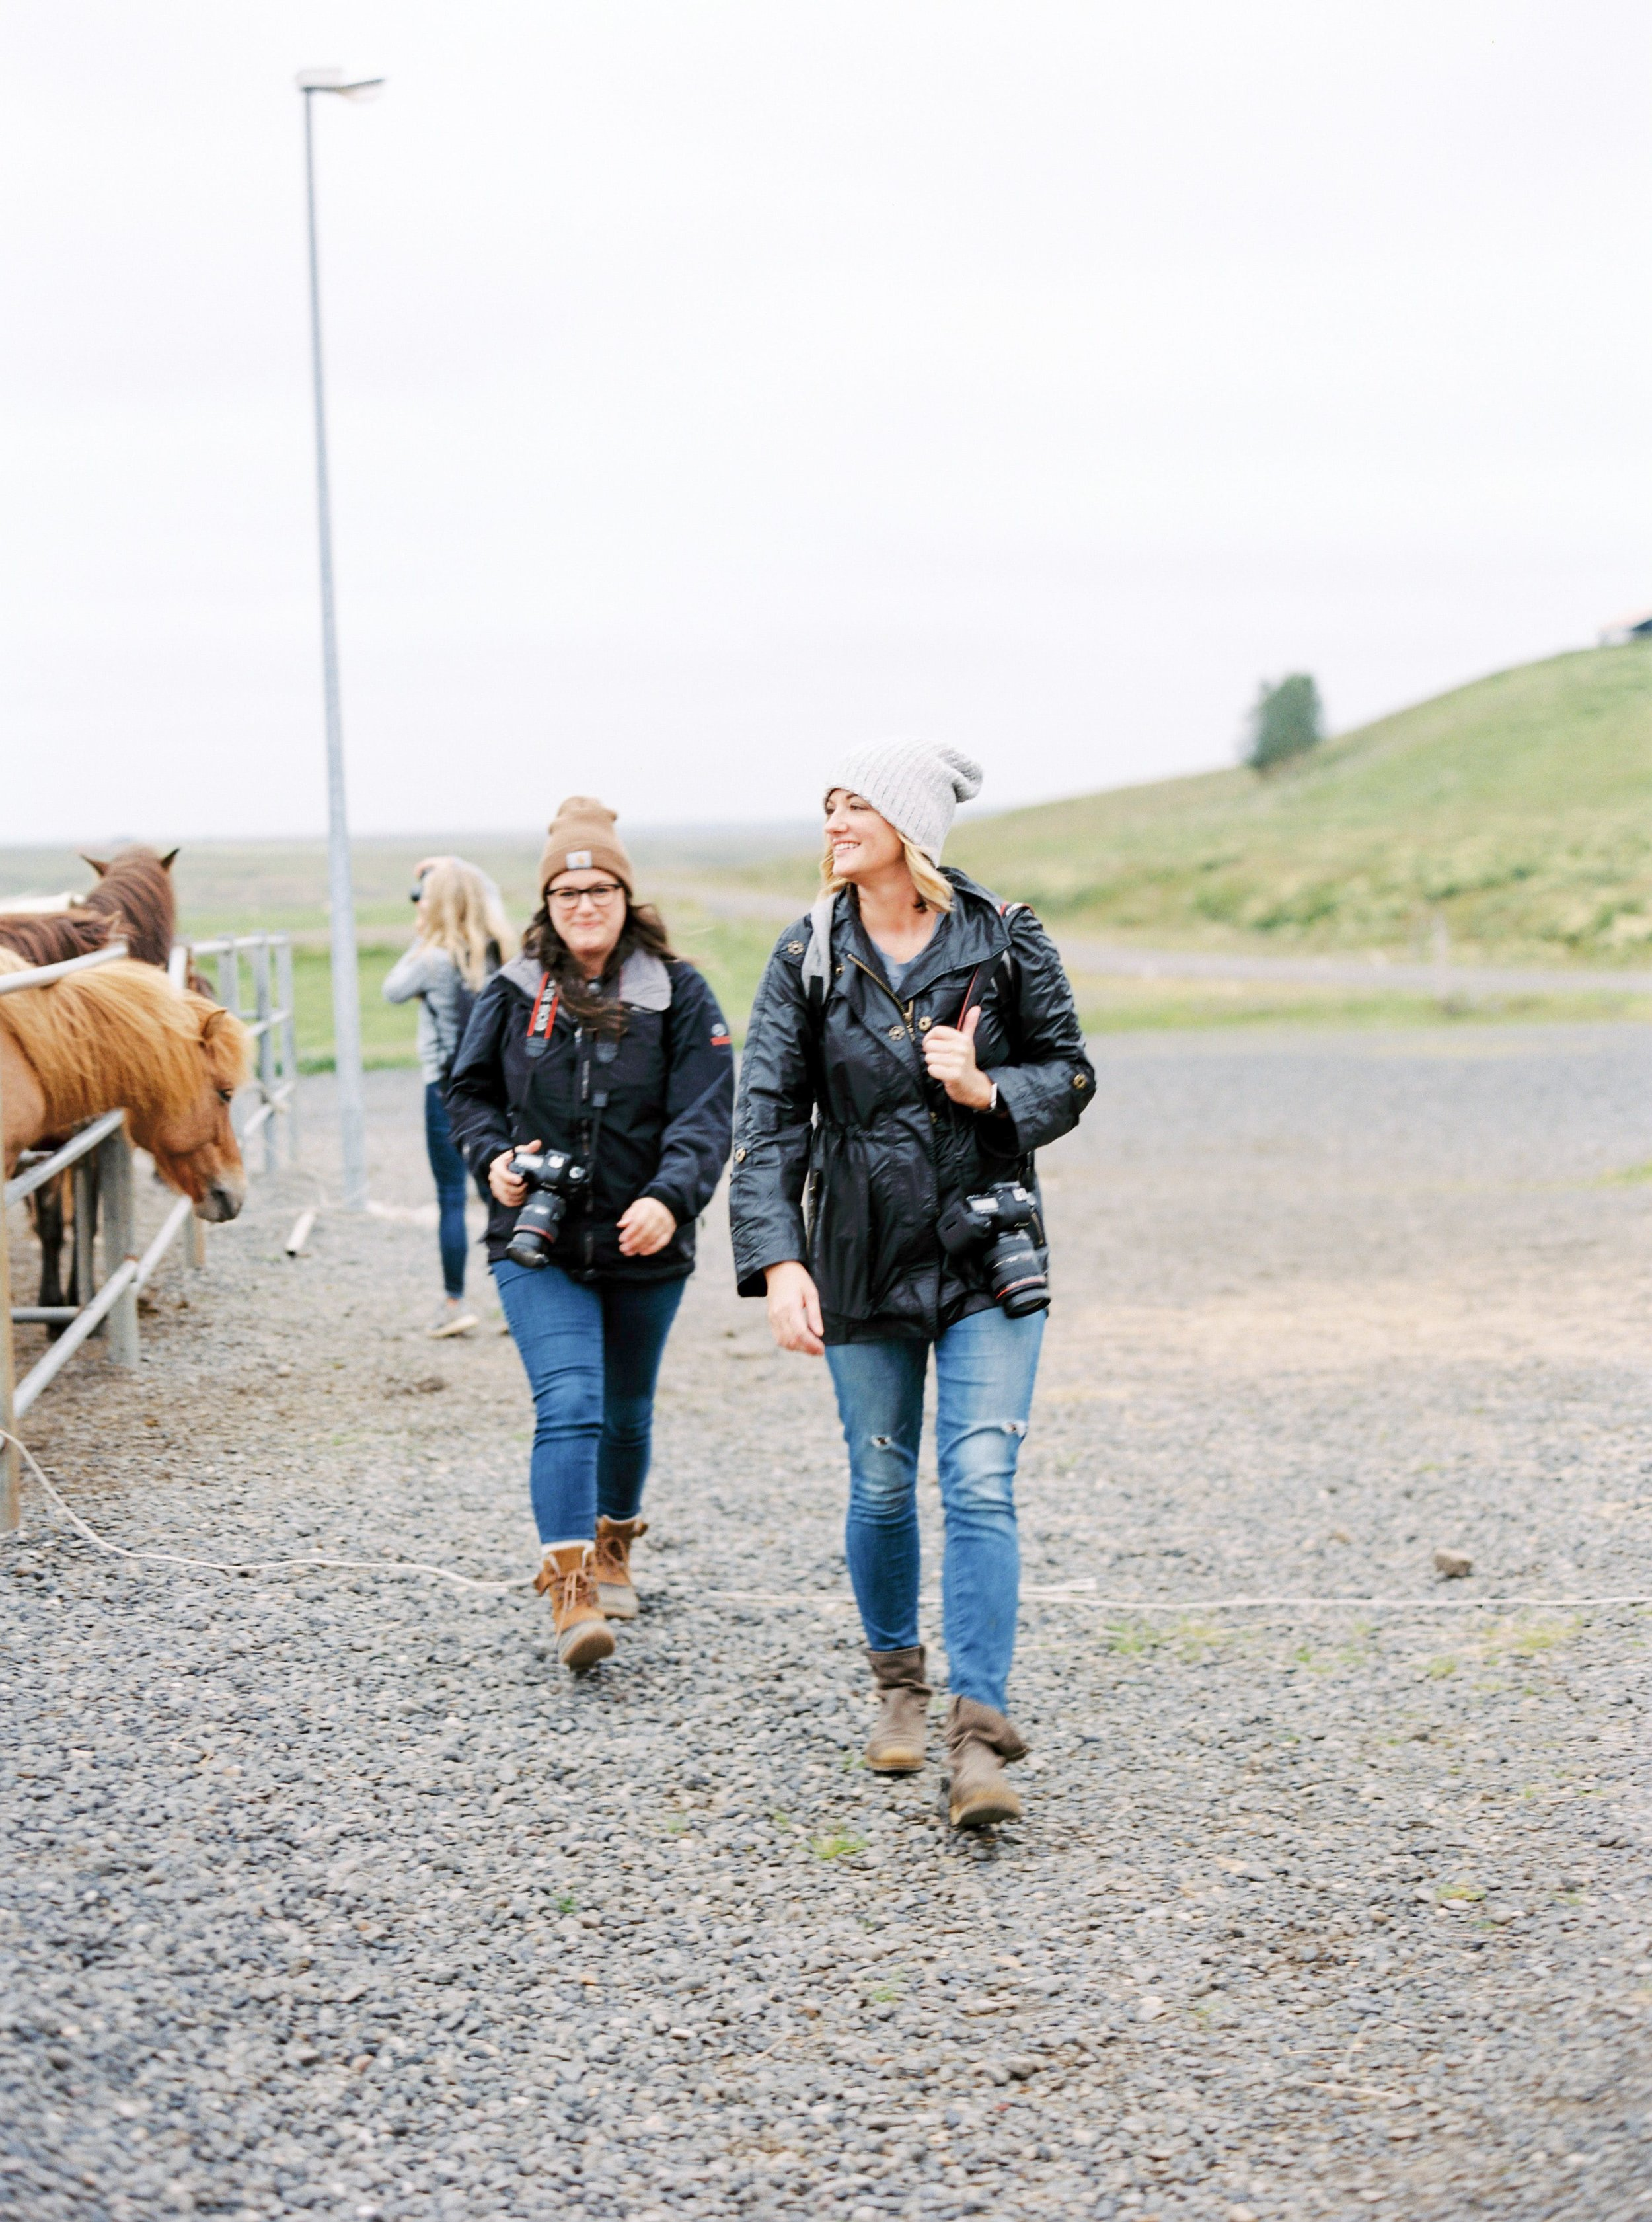 Horses in Iceland by Kristin Sweeting now on Cottage Hill28.jpg